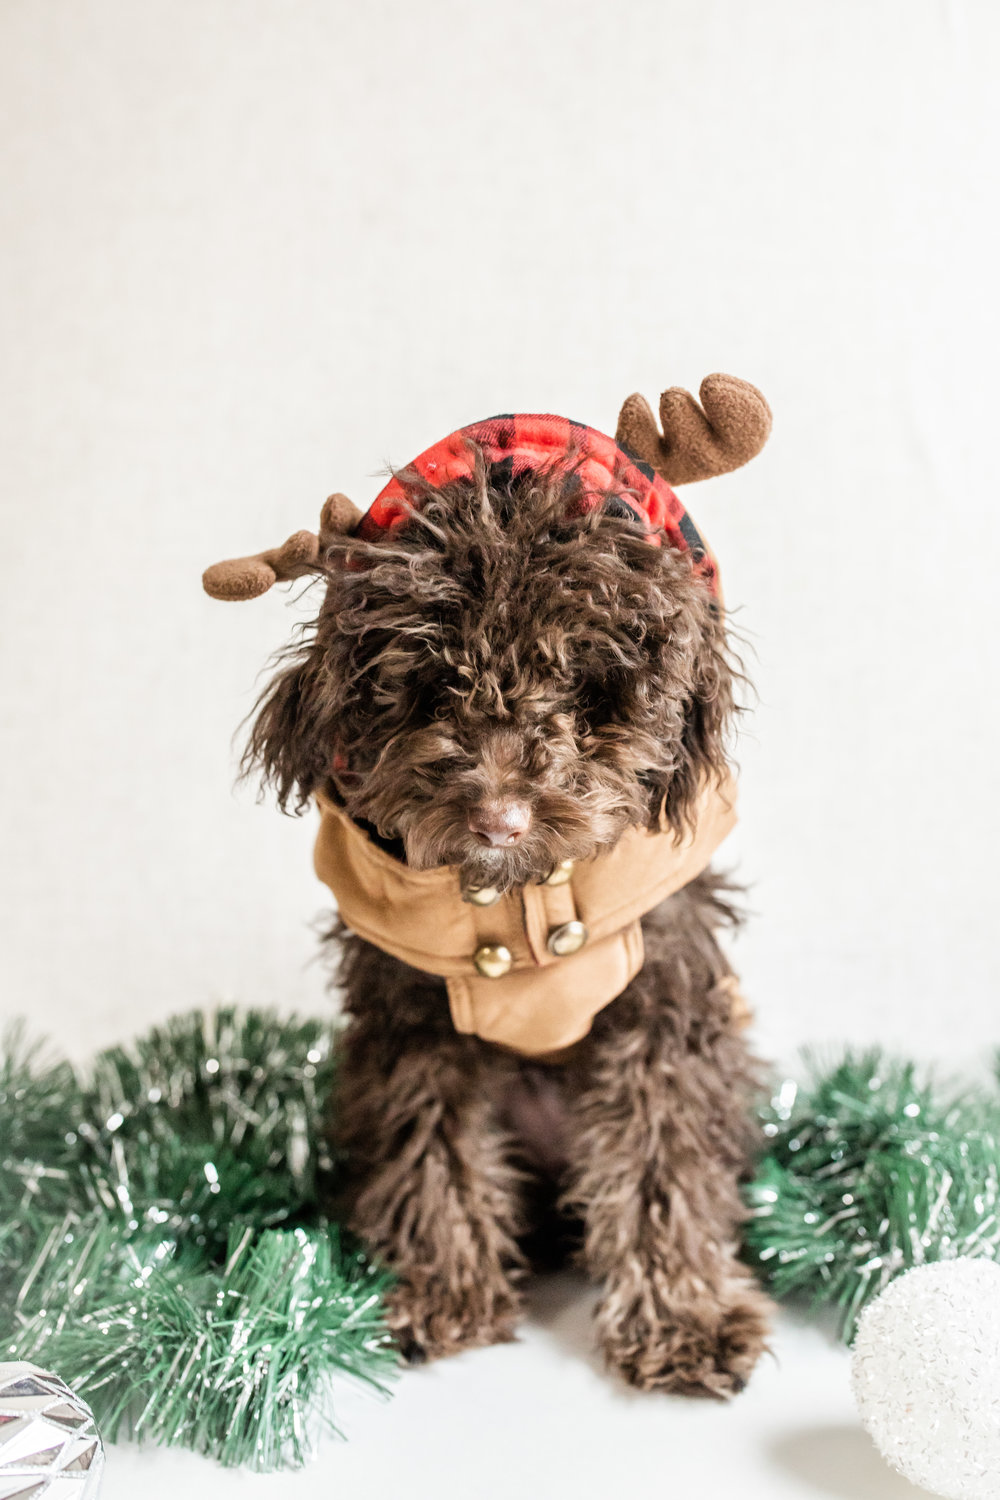 WillowAndWinston_Christmas2018-22.jpg